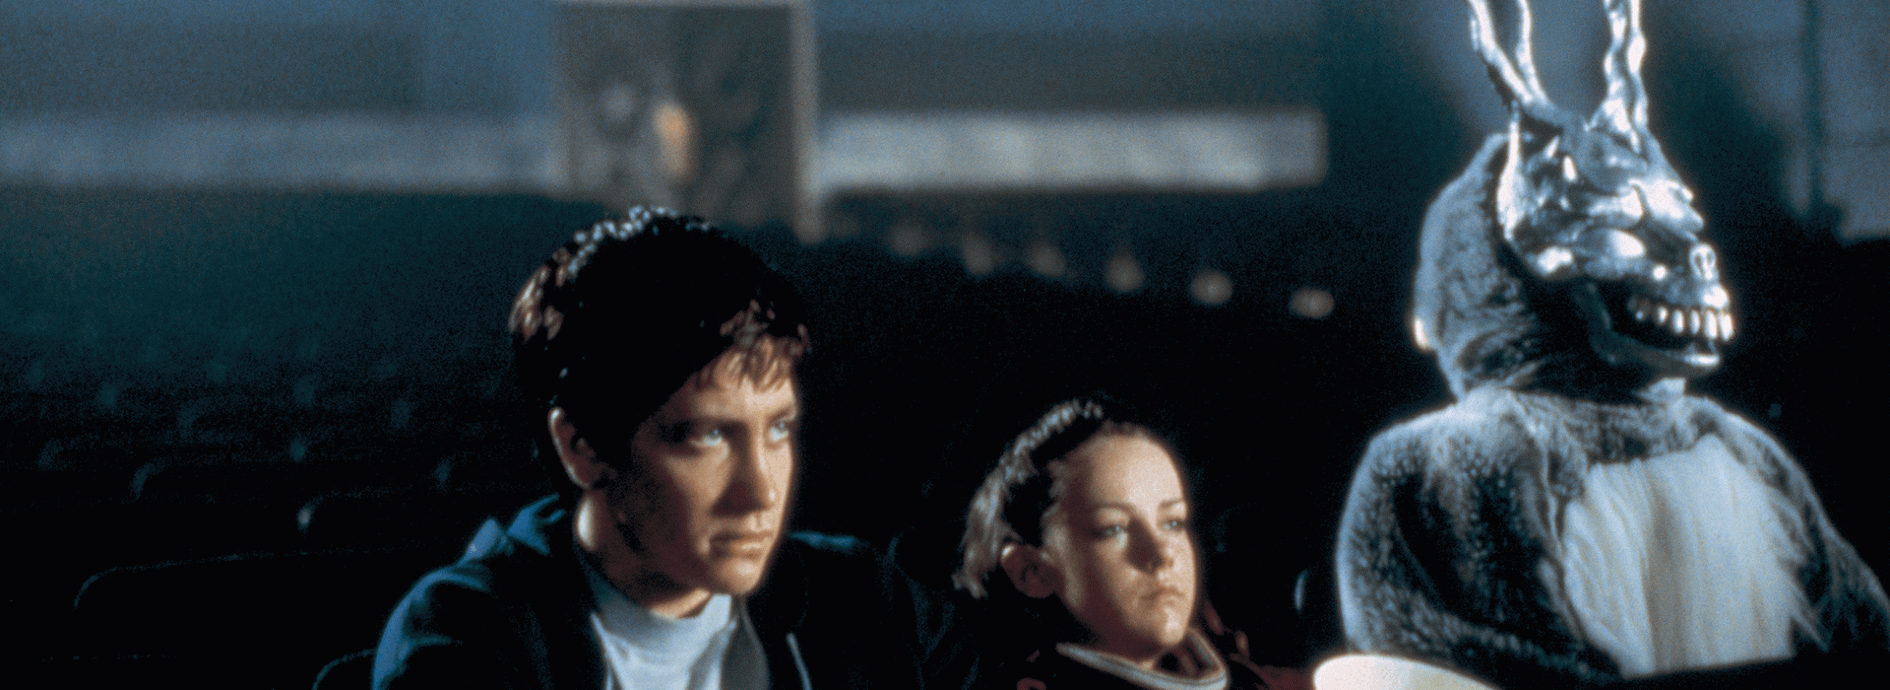 film review donnie darko Donnie darko like blair witch is an exercise, a preamble to a film, that would make a decent short flick on the indie film circuit, but blown up to feature length, the cracks shown and the holes become apparent  out of.